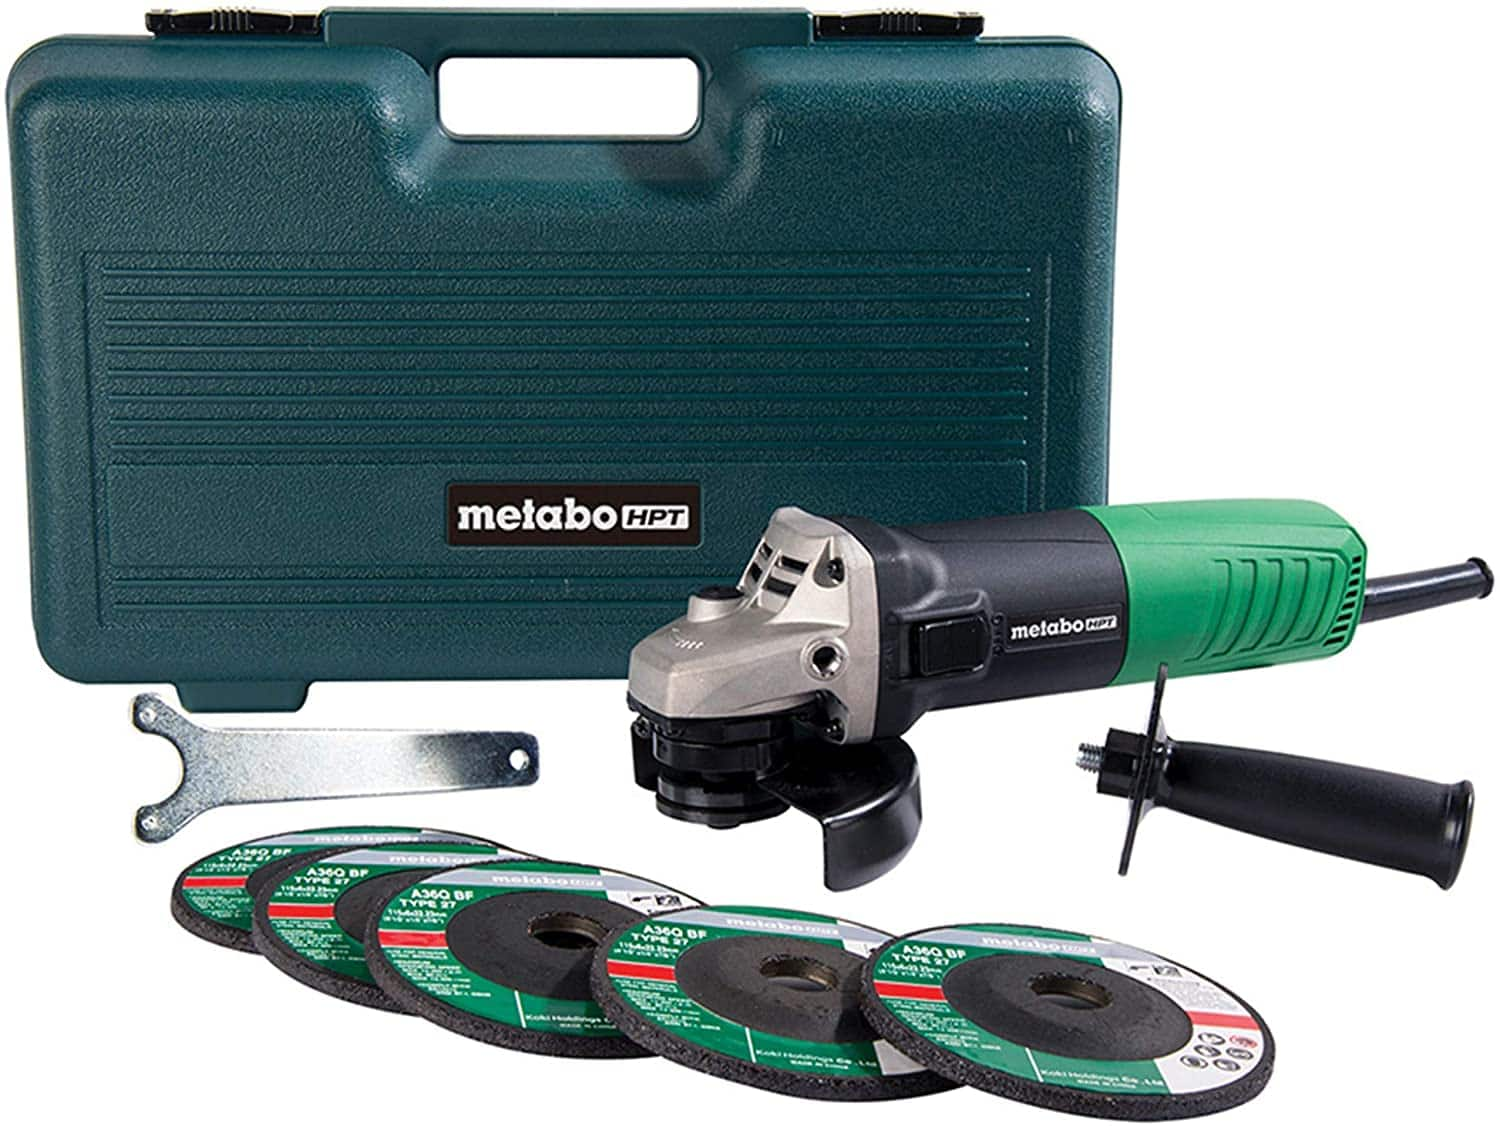 "Metabo HPT (Hitachi Power Tools) 4-1/2"" 6-amp Angle Grinder $39 w/ FS"